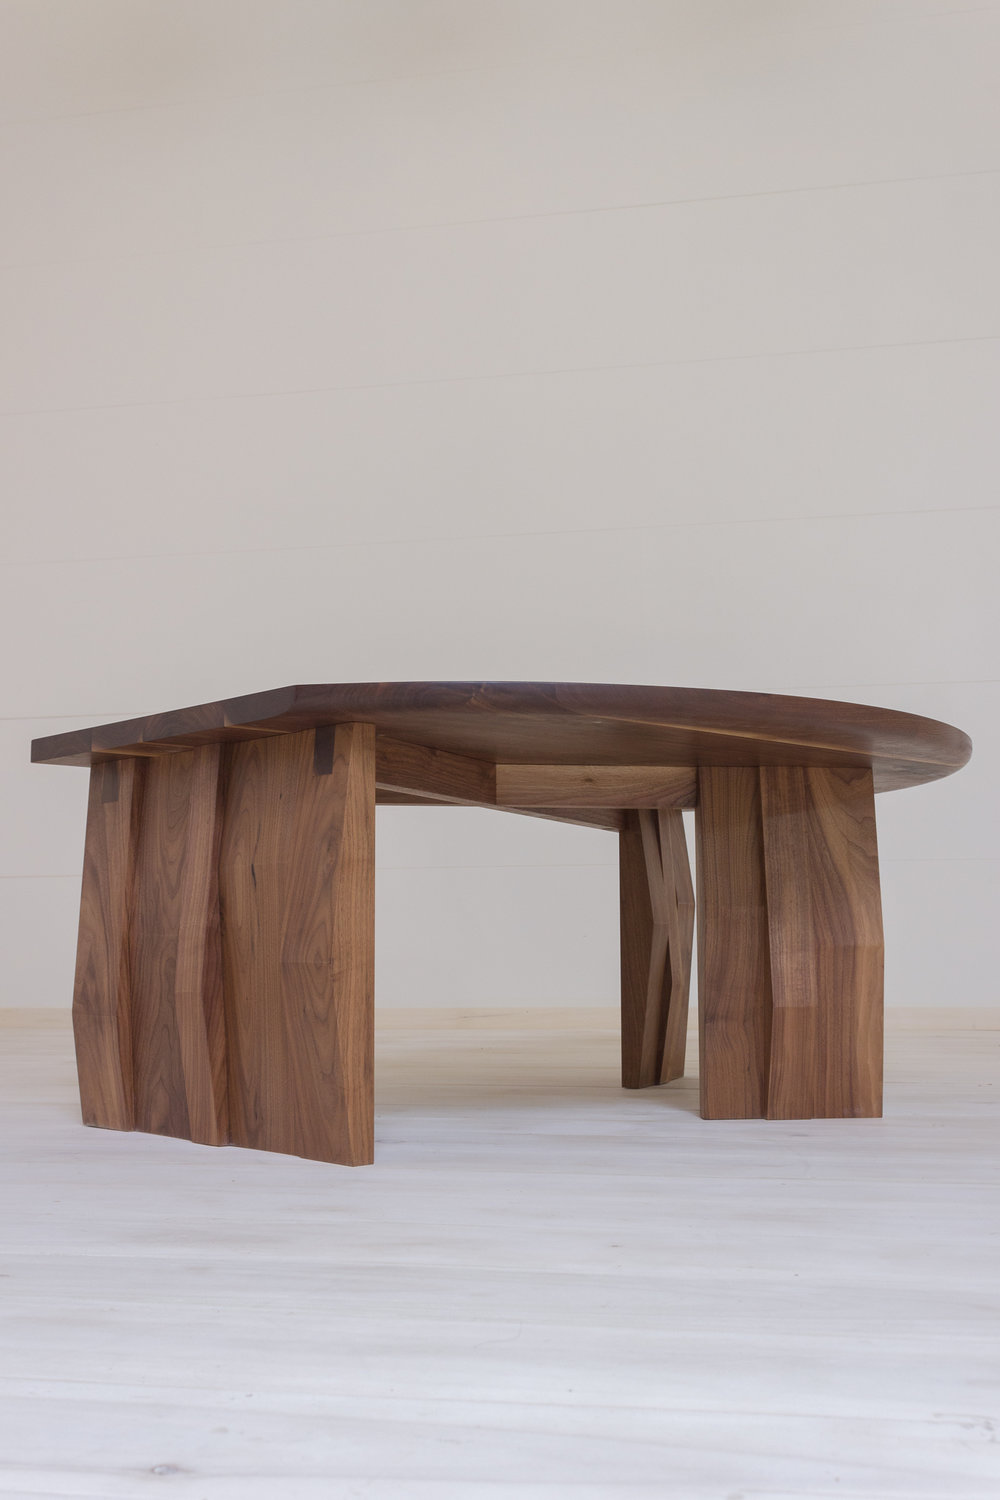 CoffeeTable_020.JPG